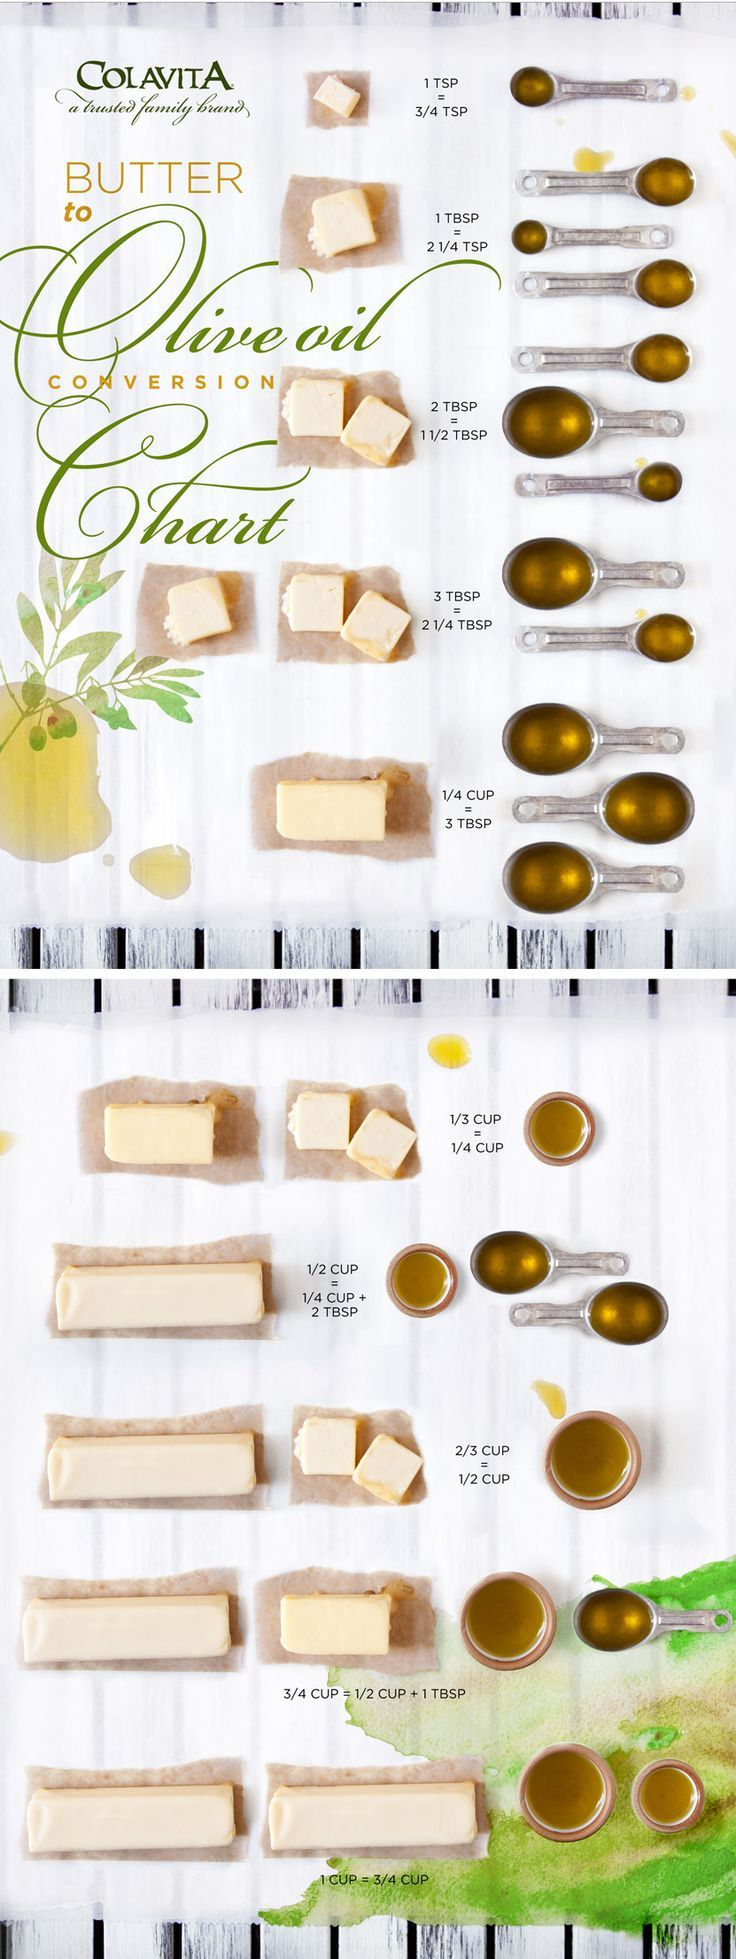 Butter to Olive Oil Conversion Chart! Bookmark this page for future reference! It is no secret that using olive oil is healthier than using butter.  Here is a convenient chart so that you can substitute olive oil in your recipes that call for butter.  Butter does have its place in food, but the more you …